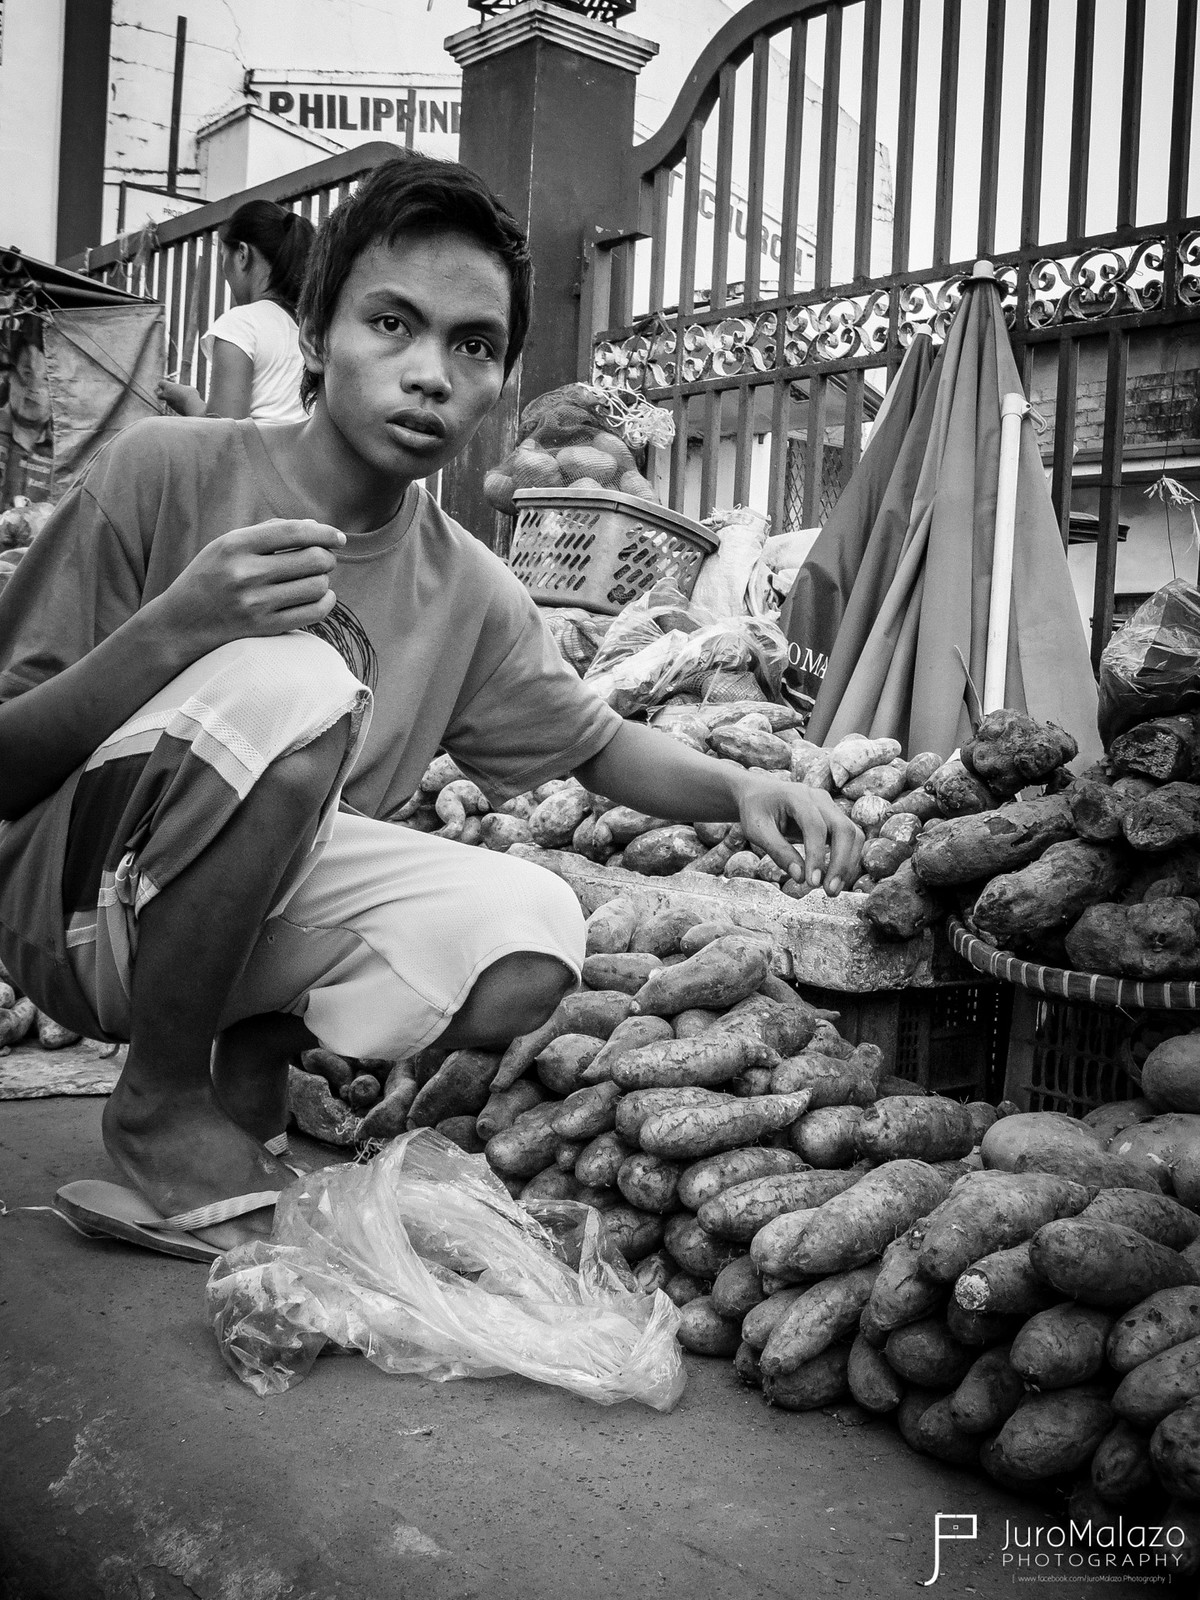 World War Bombs. (Out on the Streets: Street Photography by Juro Malazo)